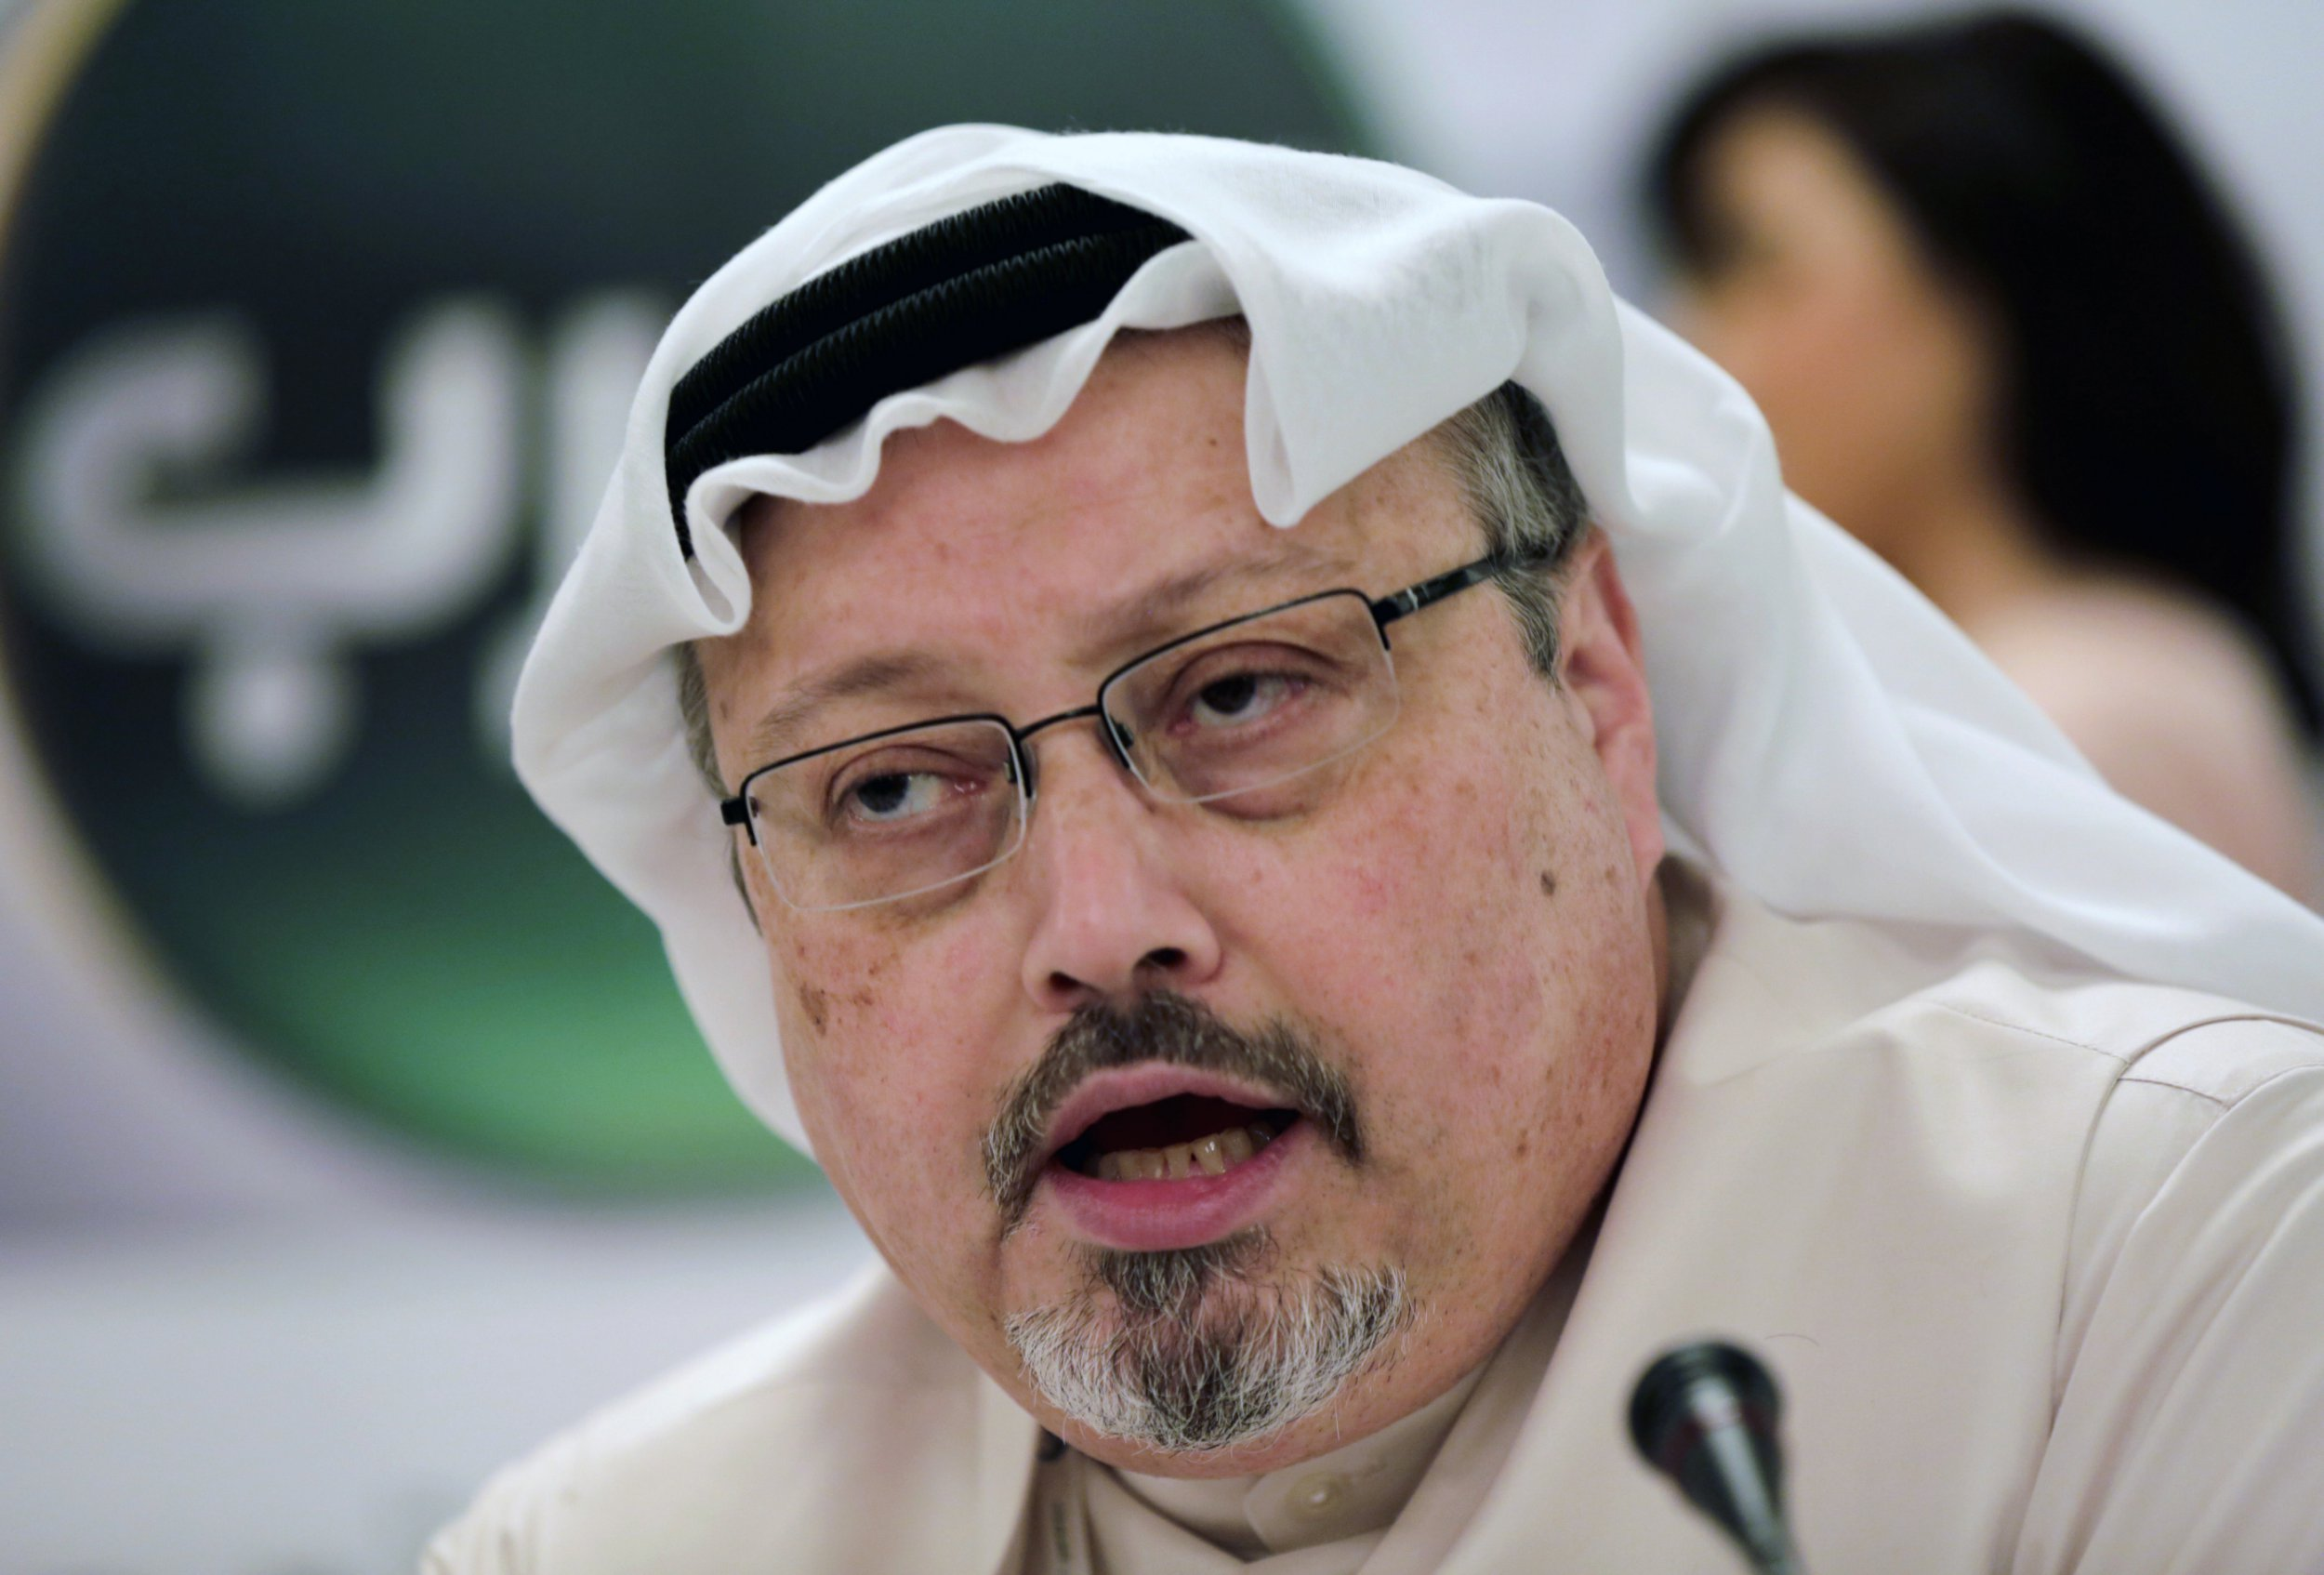 FILE - In this Feb. 1, 2015 file photo, Saudi journalist Jamal Khashoggi speaks during a news conference in Manama, Bahrain. Saudi Arabia is moving ahead with plans to hold a glitzy investment forum that kicks off Tuesday, Oct. 23, 2018, despite some of its most important speakers pulling out in the global outcry over the killing of Khashoggi. The meeting was intended to draw leading investors who could help underwrite Crown Prince Mohammed bin Salman???s ambitious plans to revamp the economy. (AP Photo/Hasan Jamali, File)